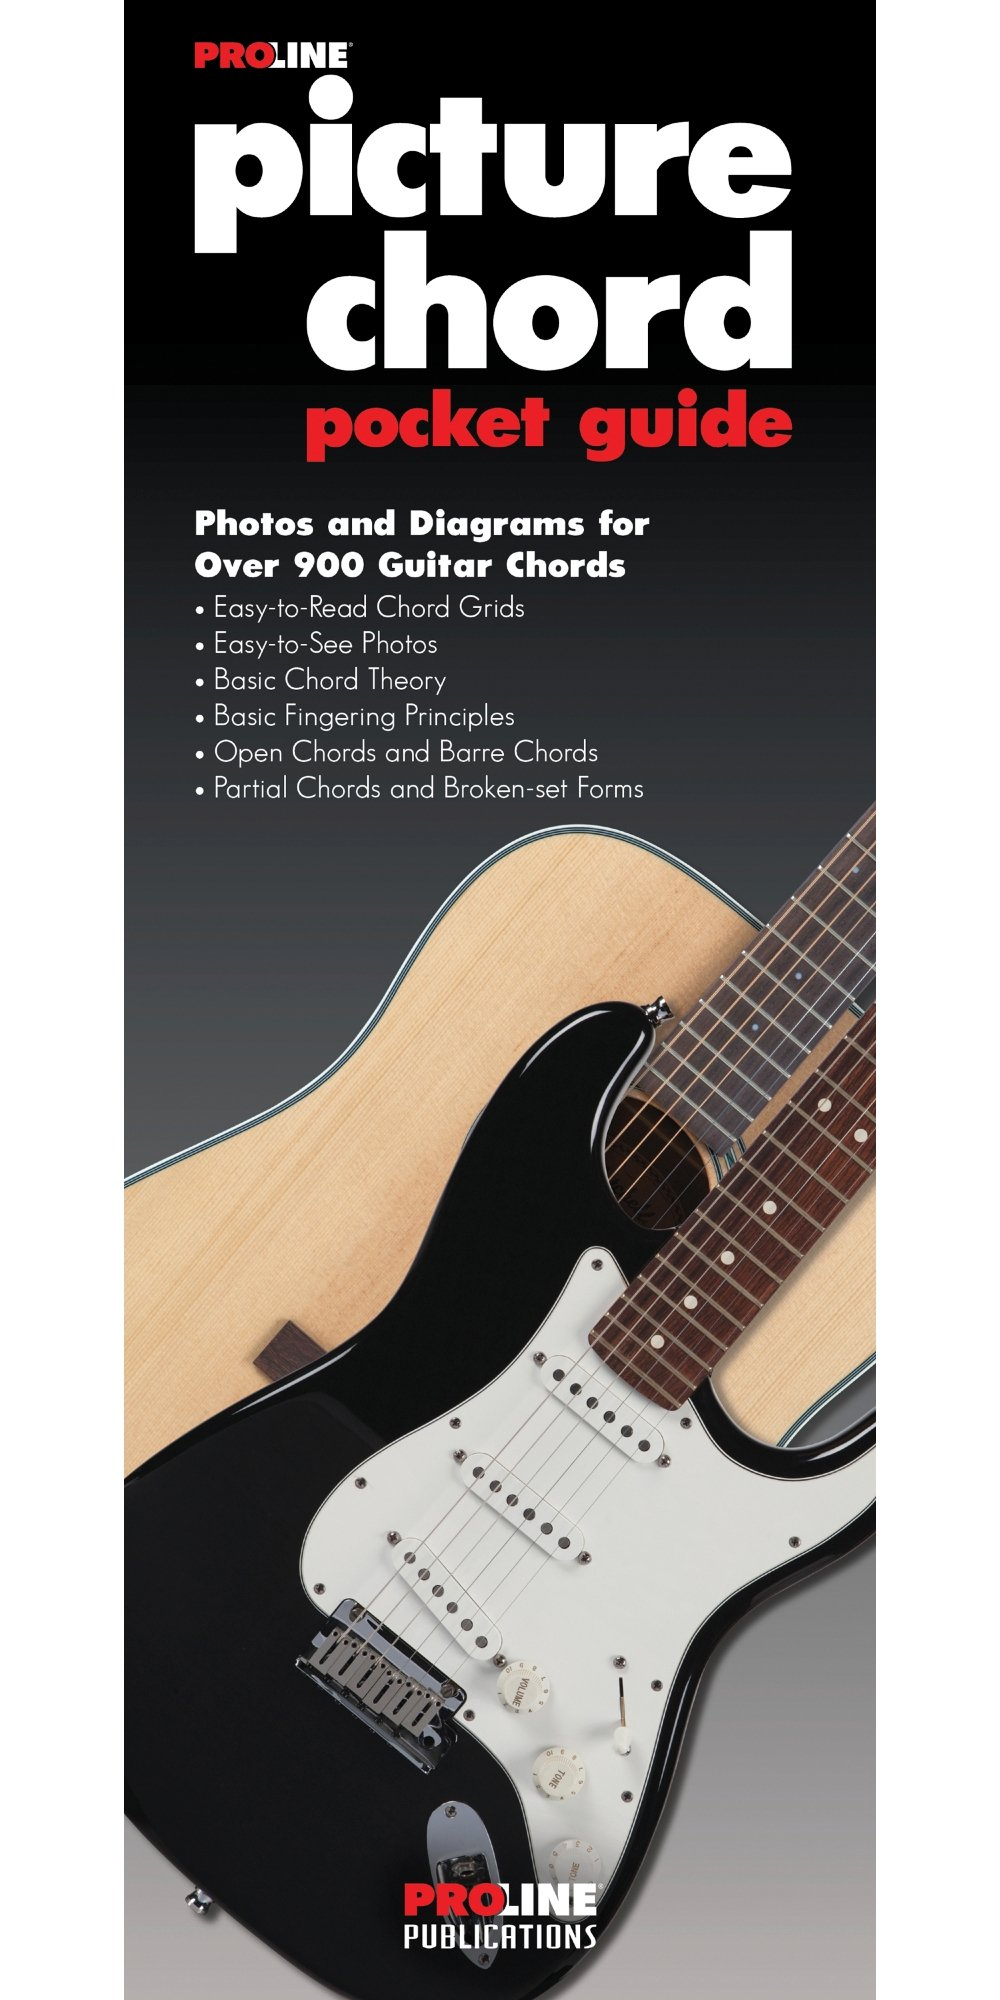 Amazon Proline Picture Guitar Chord Pocket Guide Book